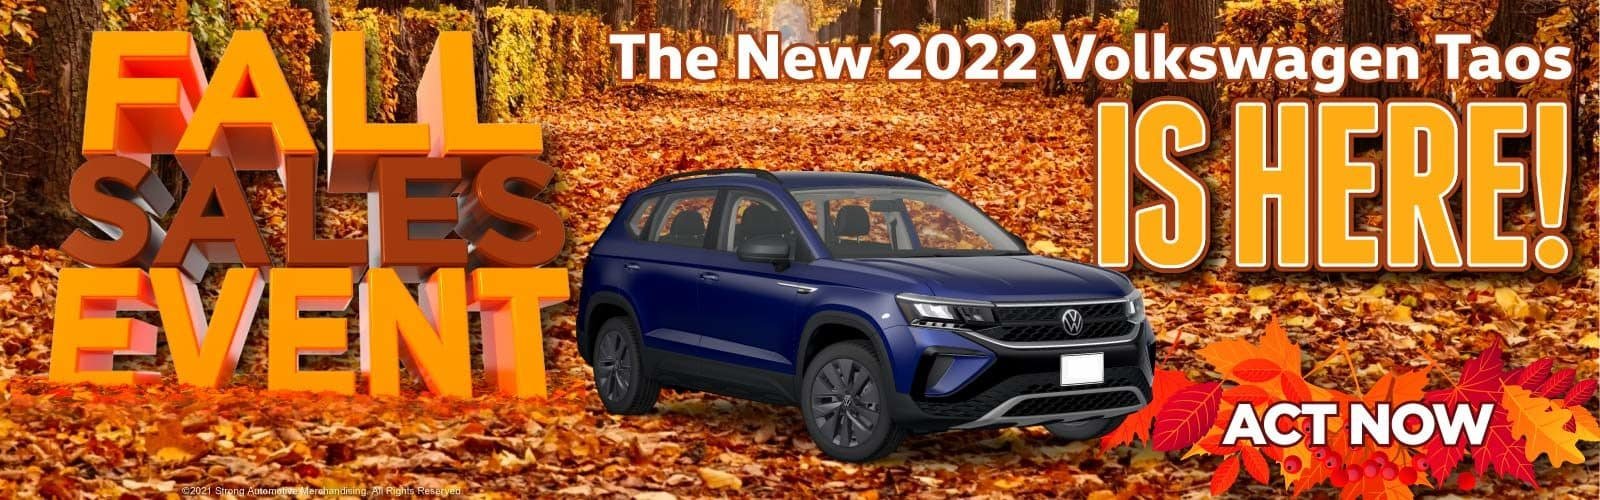 The New 2022 Volkswagen Taos is HERE! — ACT NOW